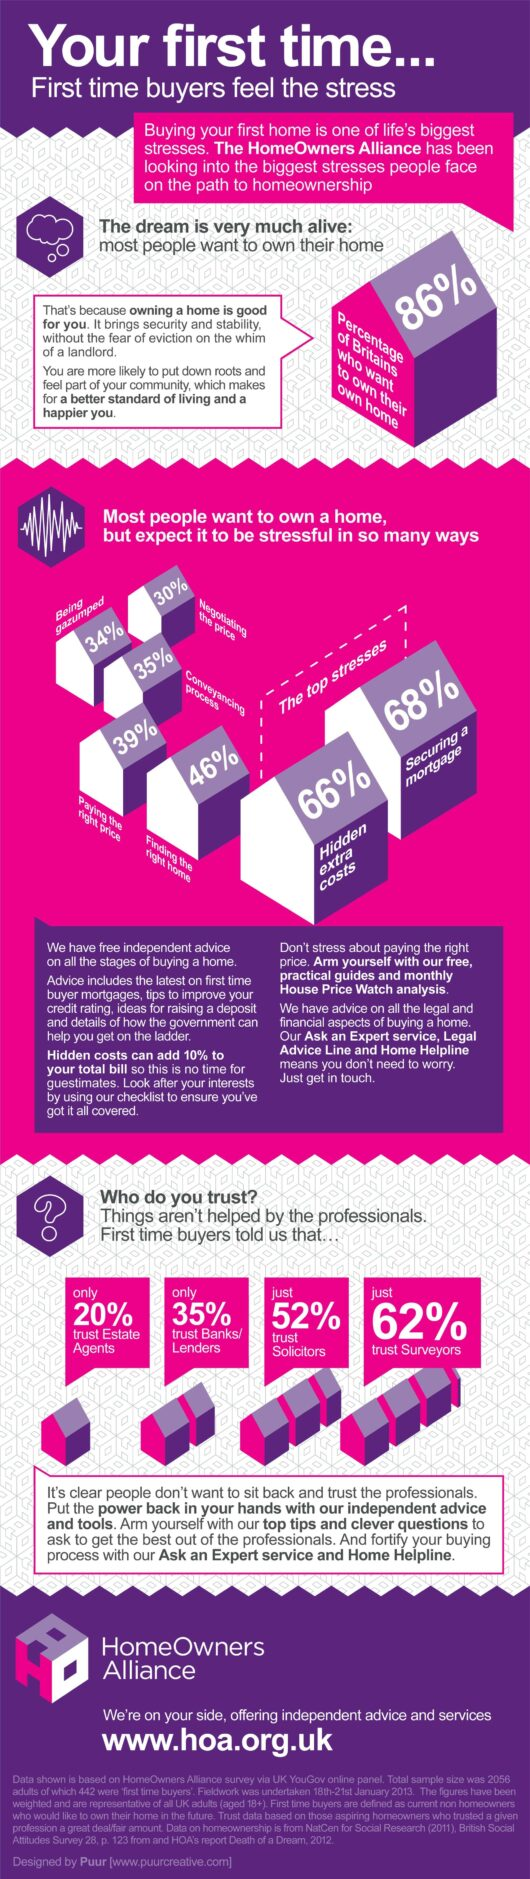 Homeowners Alliance Infographic